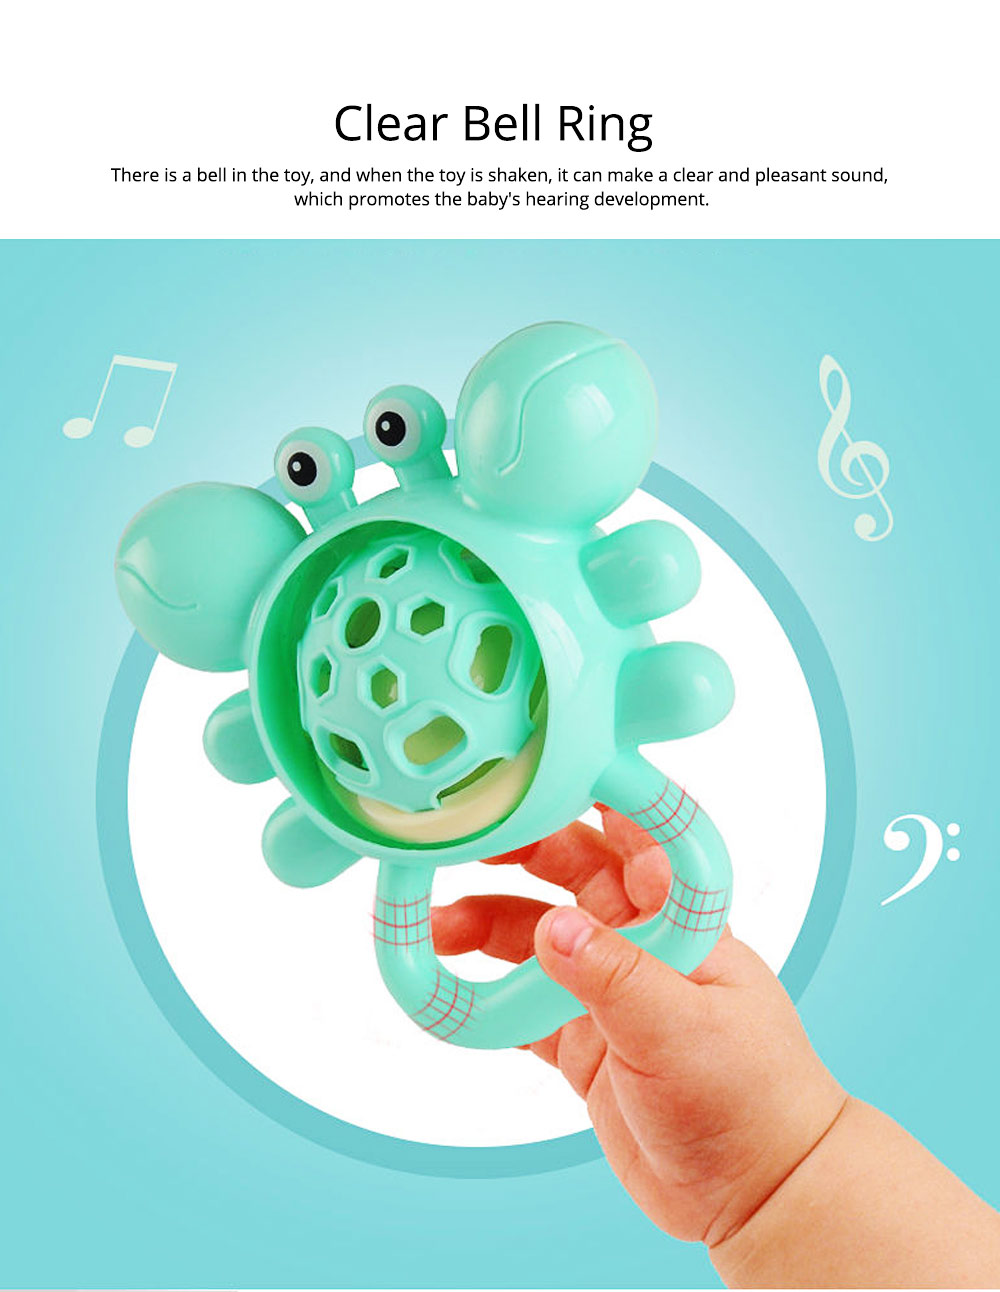 Cute Animal Dumbbell Car Model Teether Molar Rattle for Infants,Flexible Soft Environmentally Safe Plastic Grinding Gum Toy 3